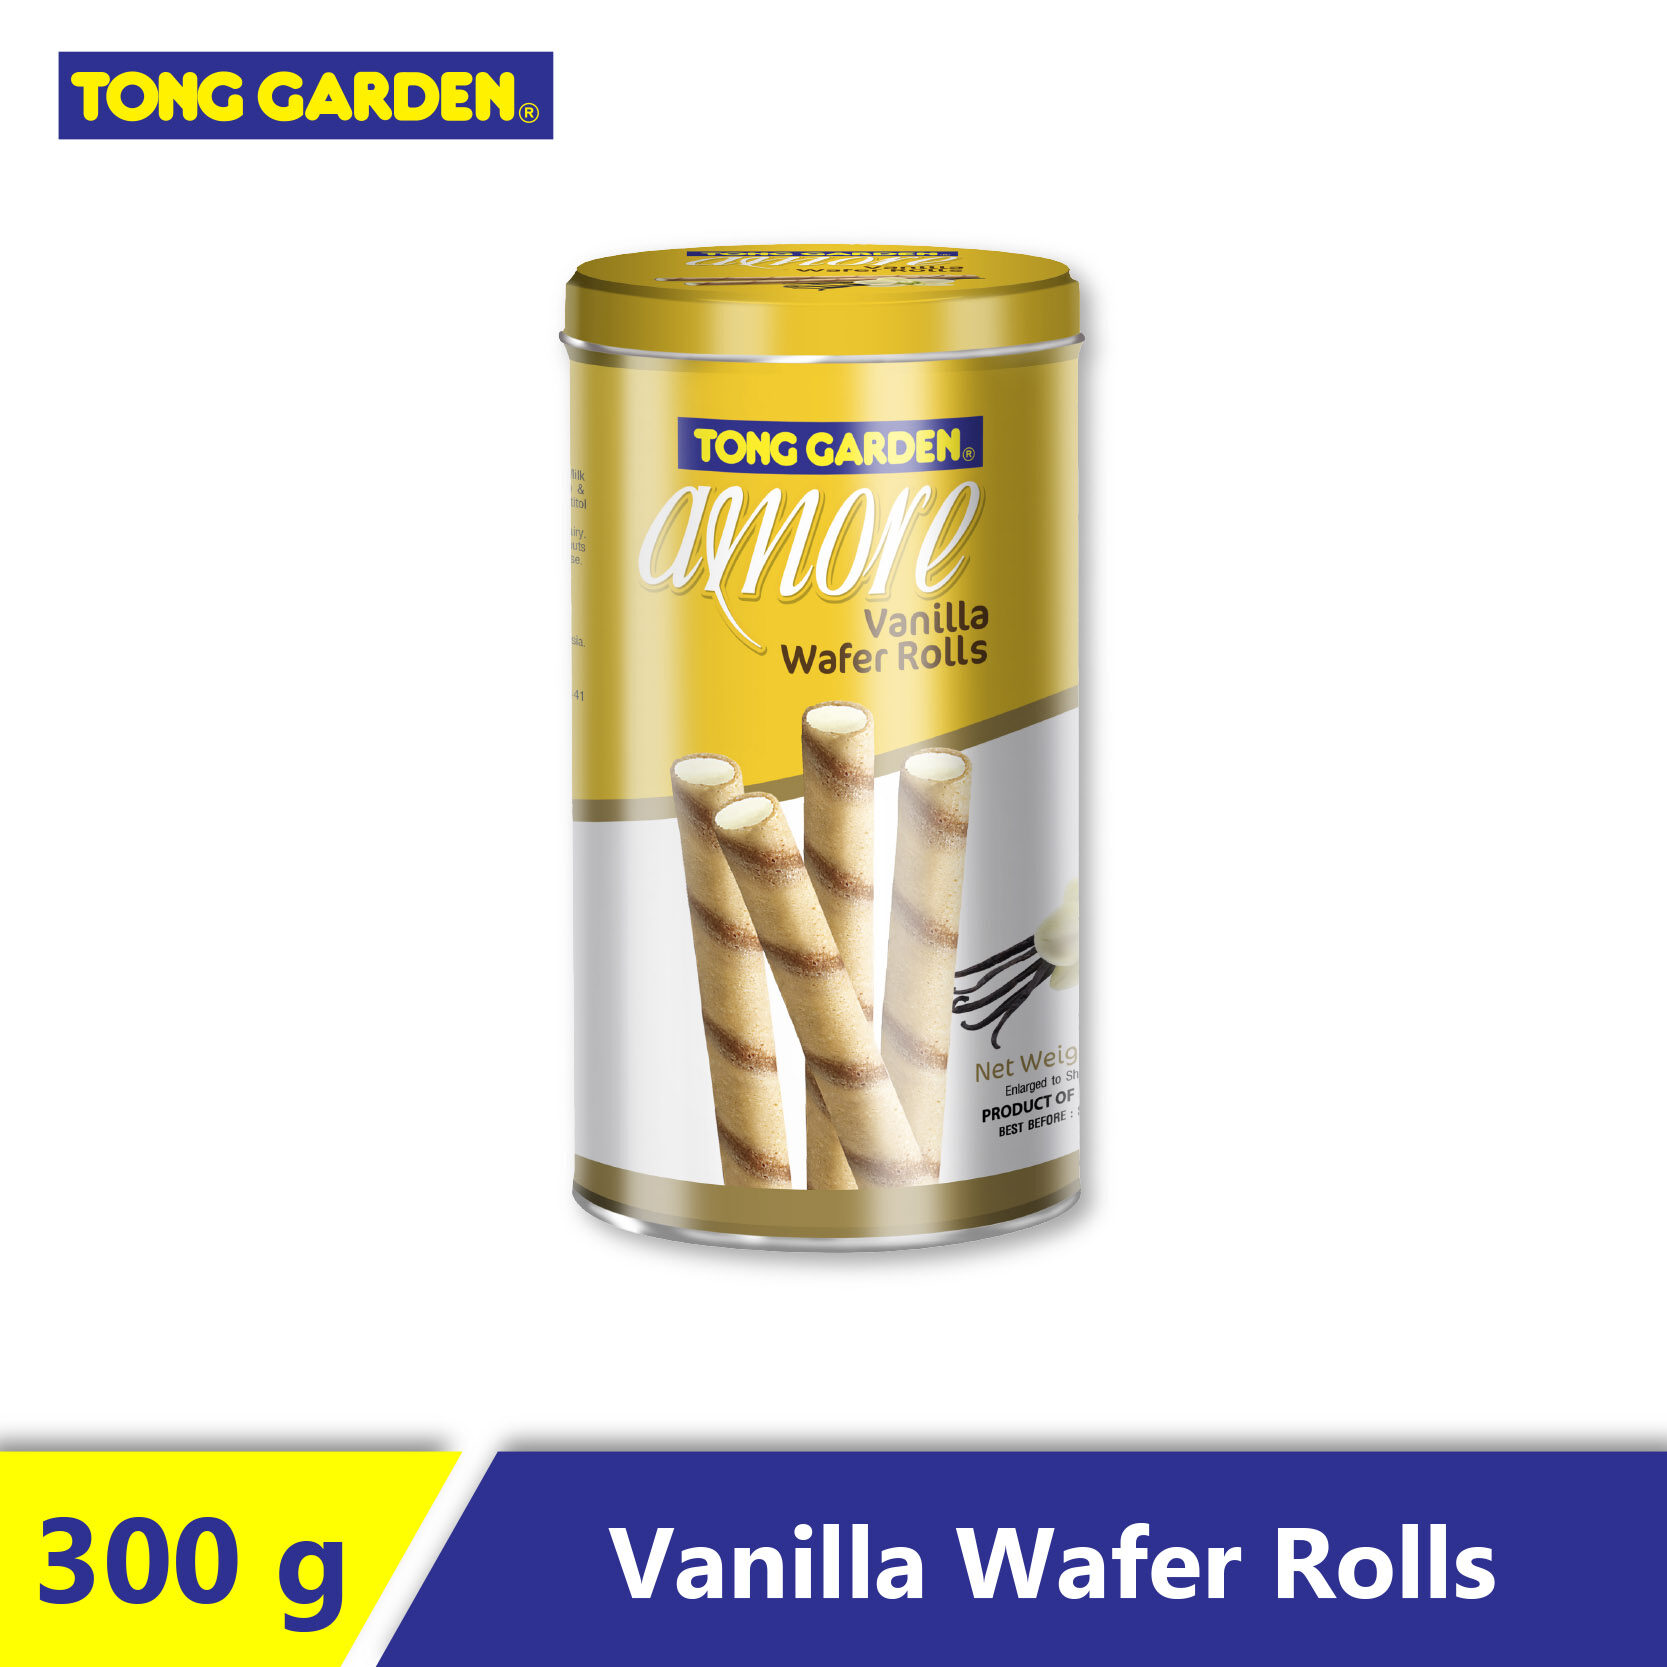 AMORE Vanilla Wafer Roll 300g x 12 [Carton]